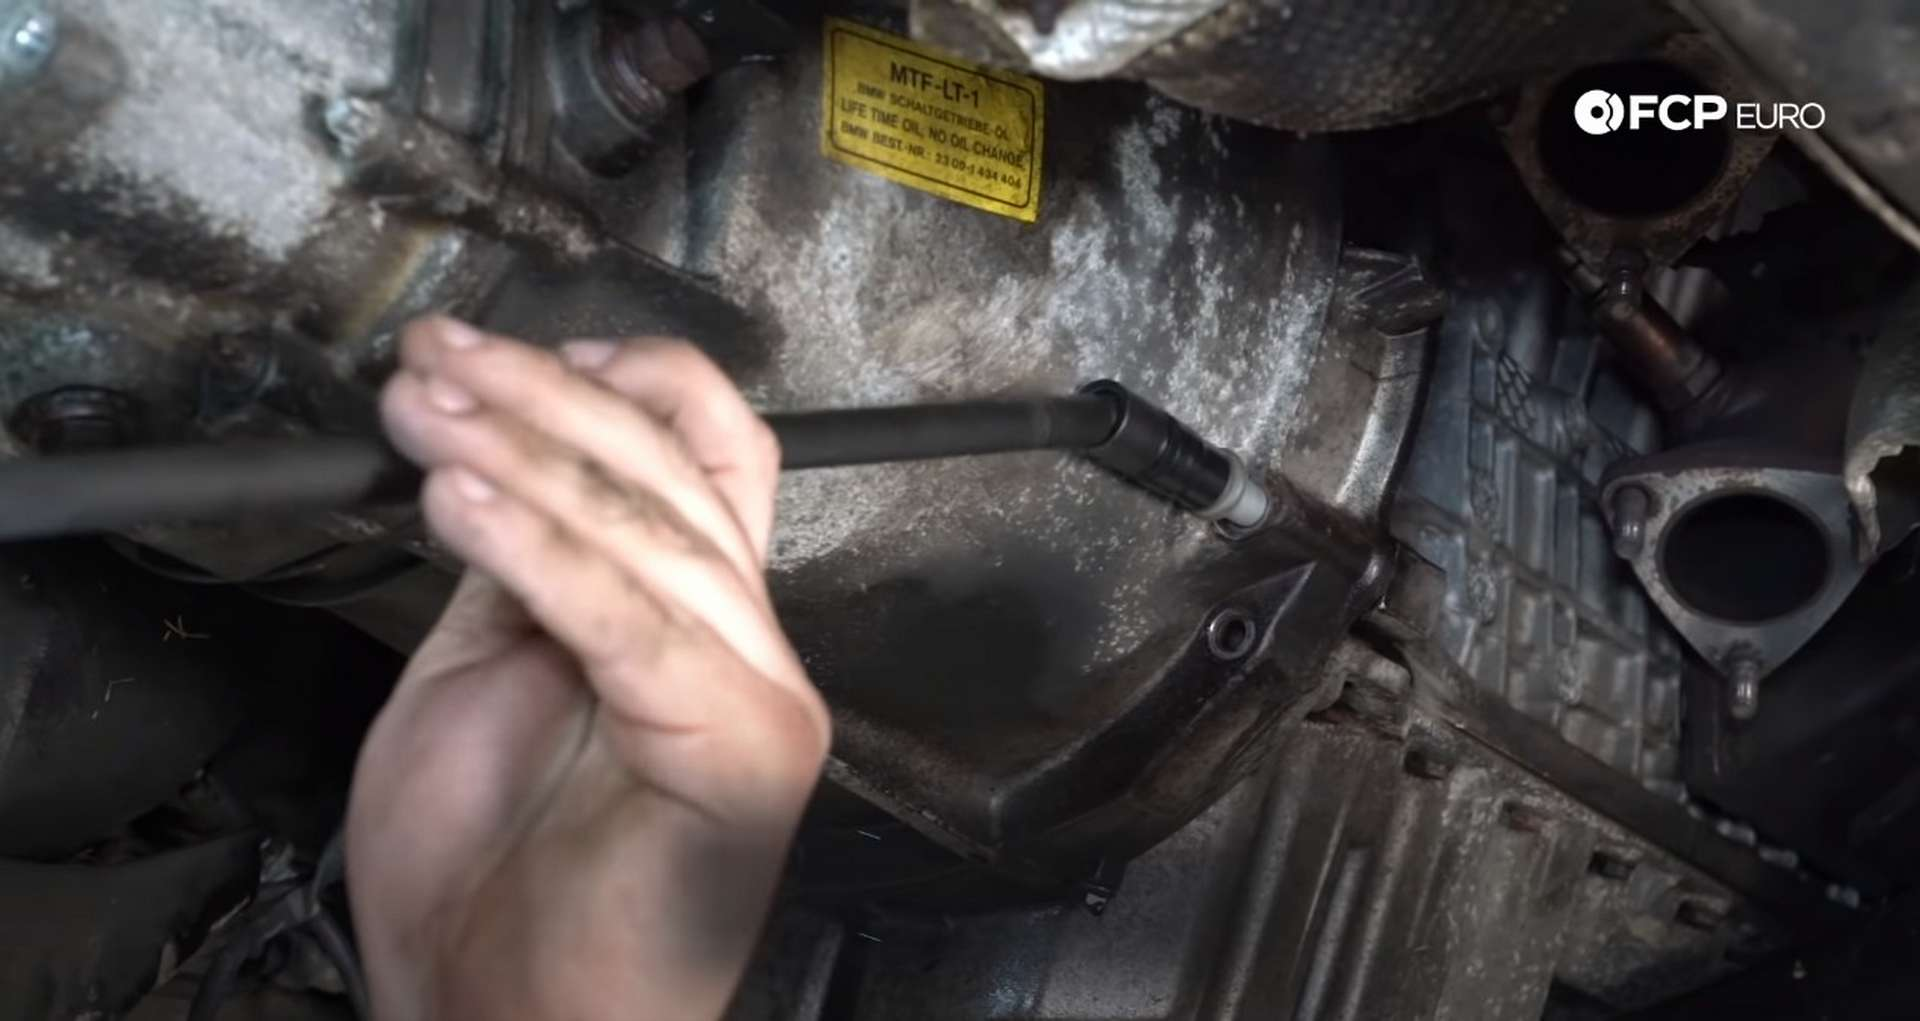 DIY BMW E46 Clutch Replacement removing the bell housing bolts